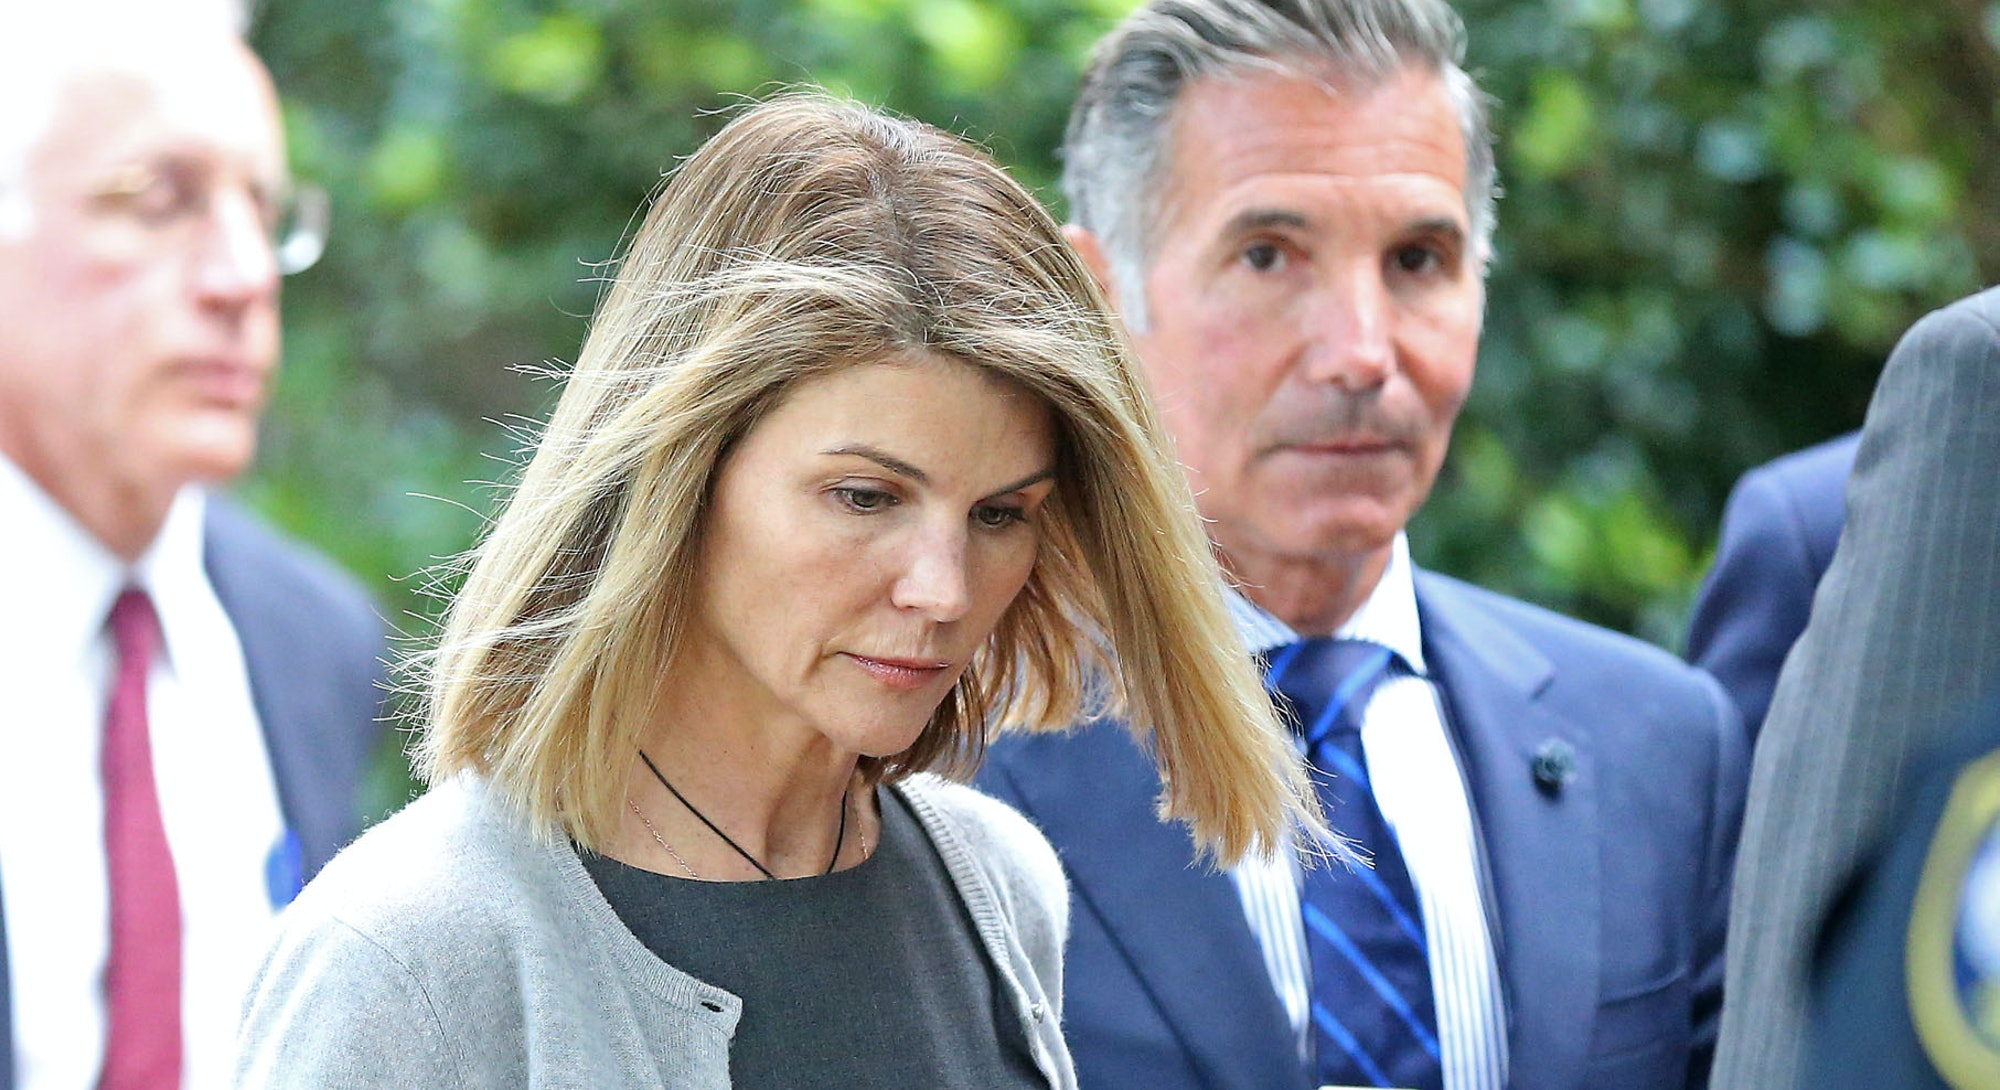 BOSTON MA. - AUGUST 27:  Actress Lori Loughlin and her husband Mossimo Giannulli leave Moakley Feder...